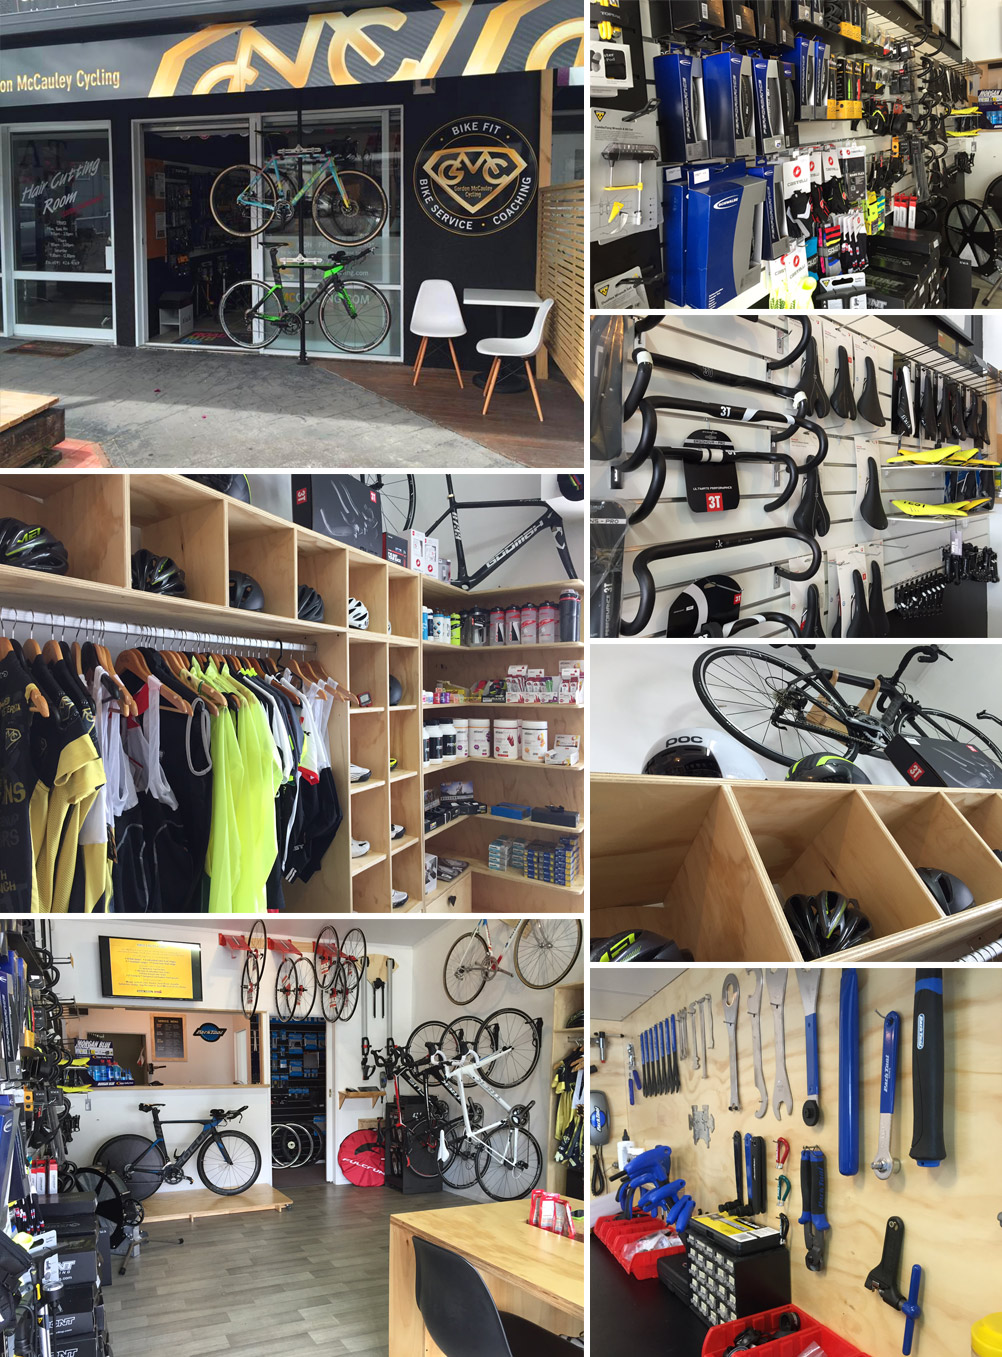 gmc-bike-shop-silverdale-auckland